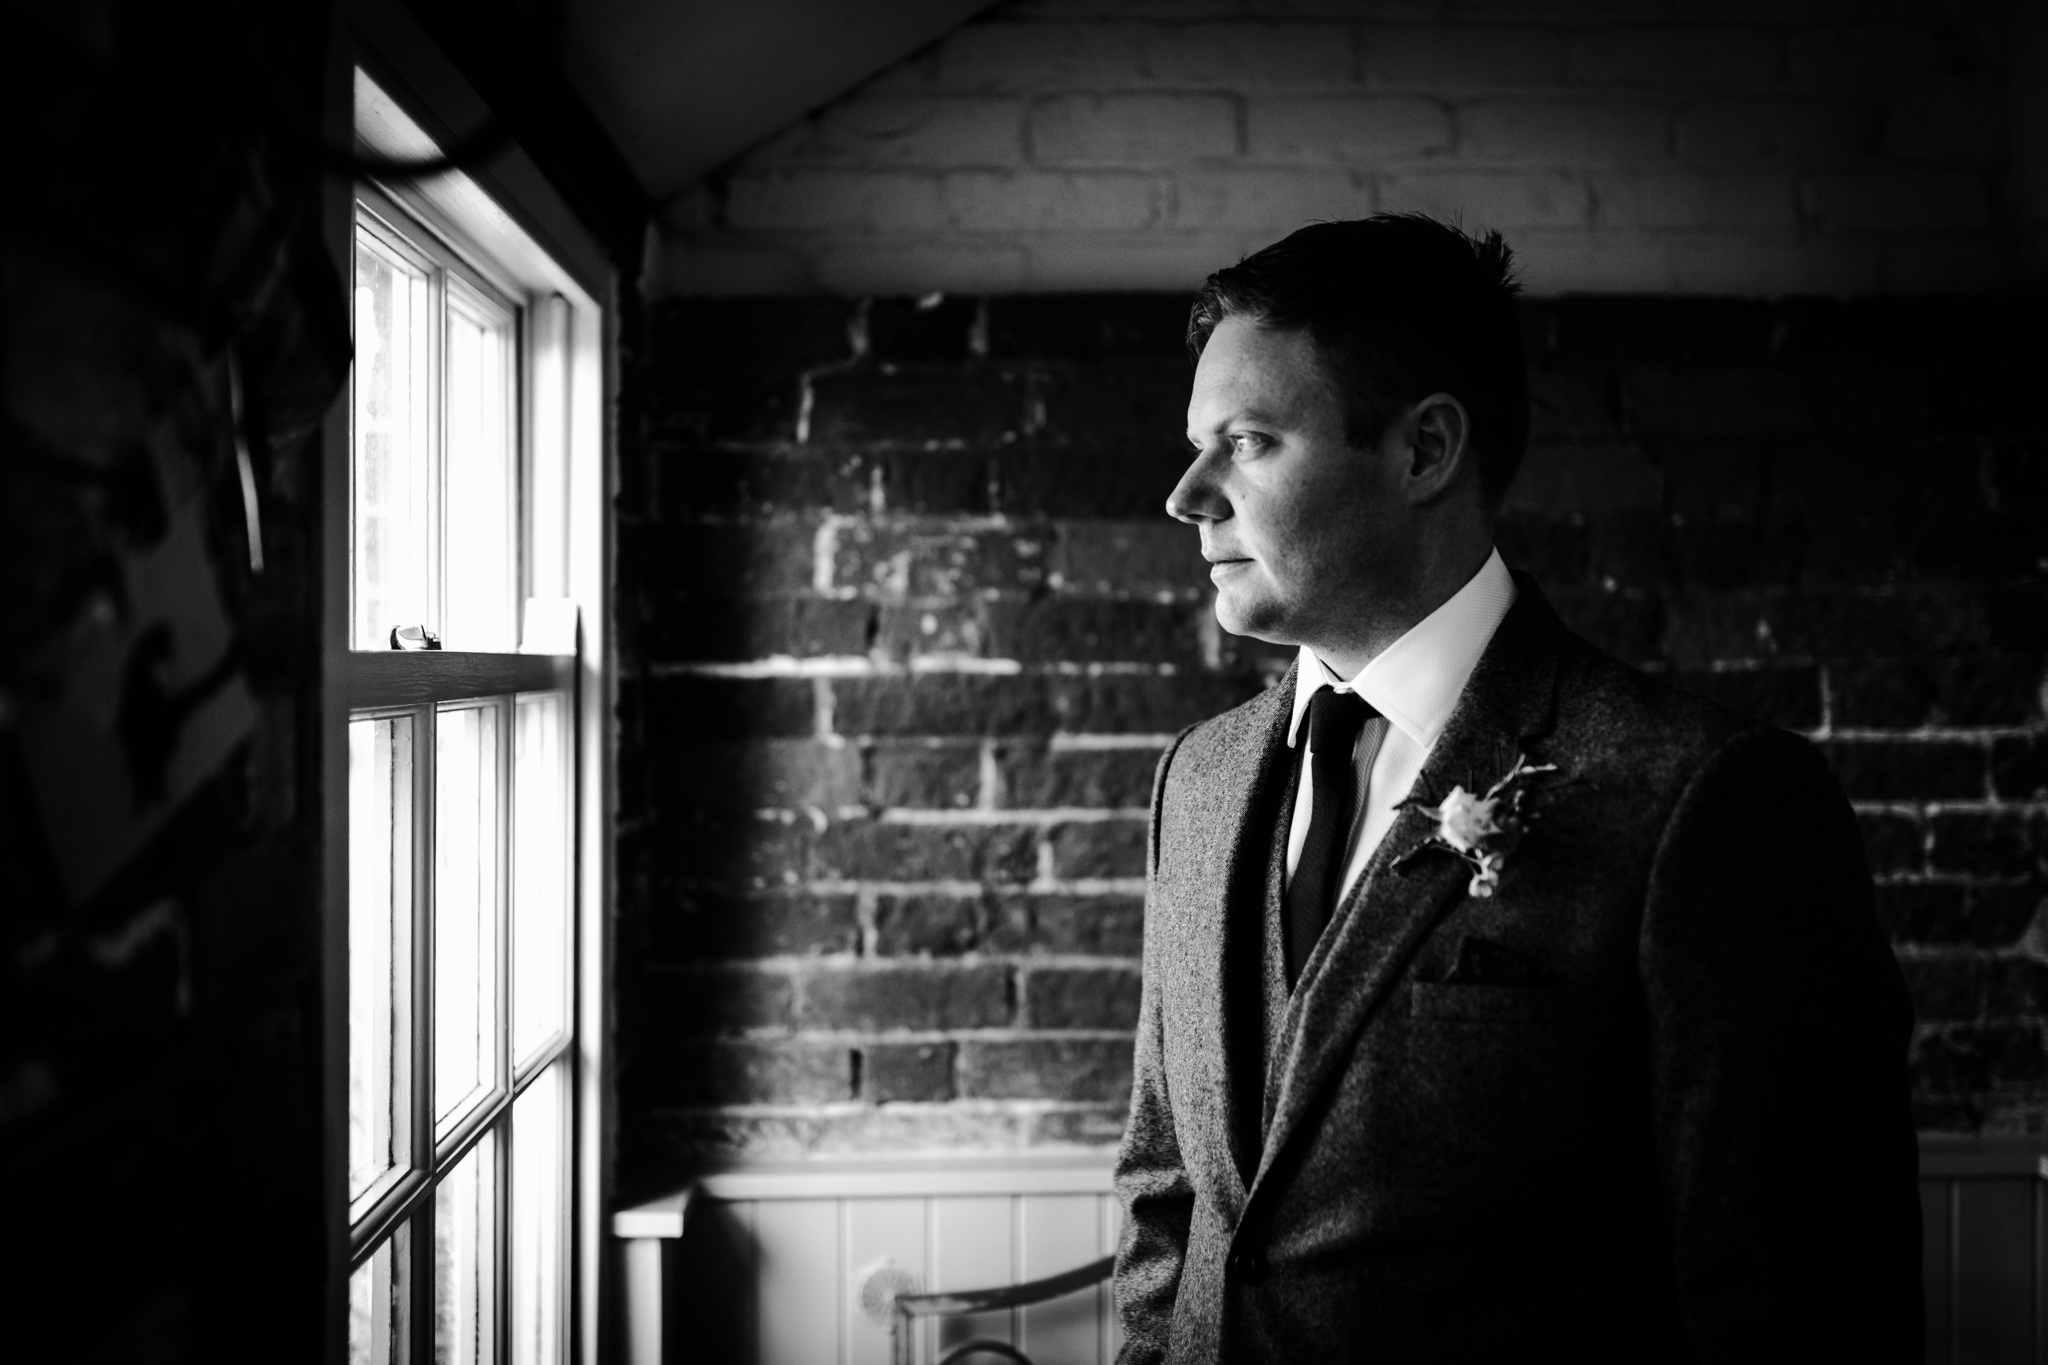 Groom gazing out the window